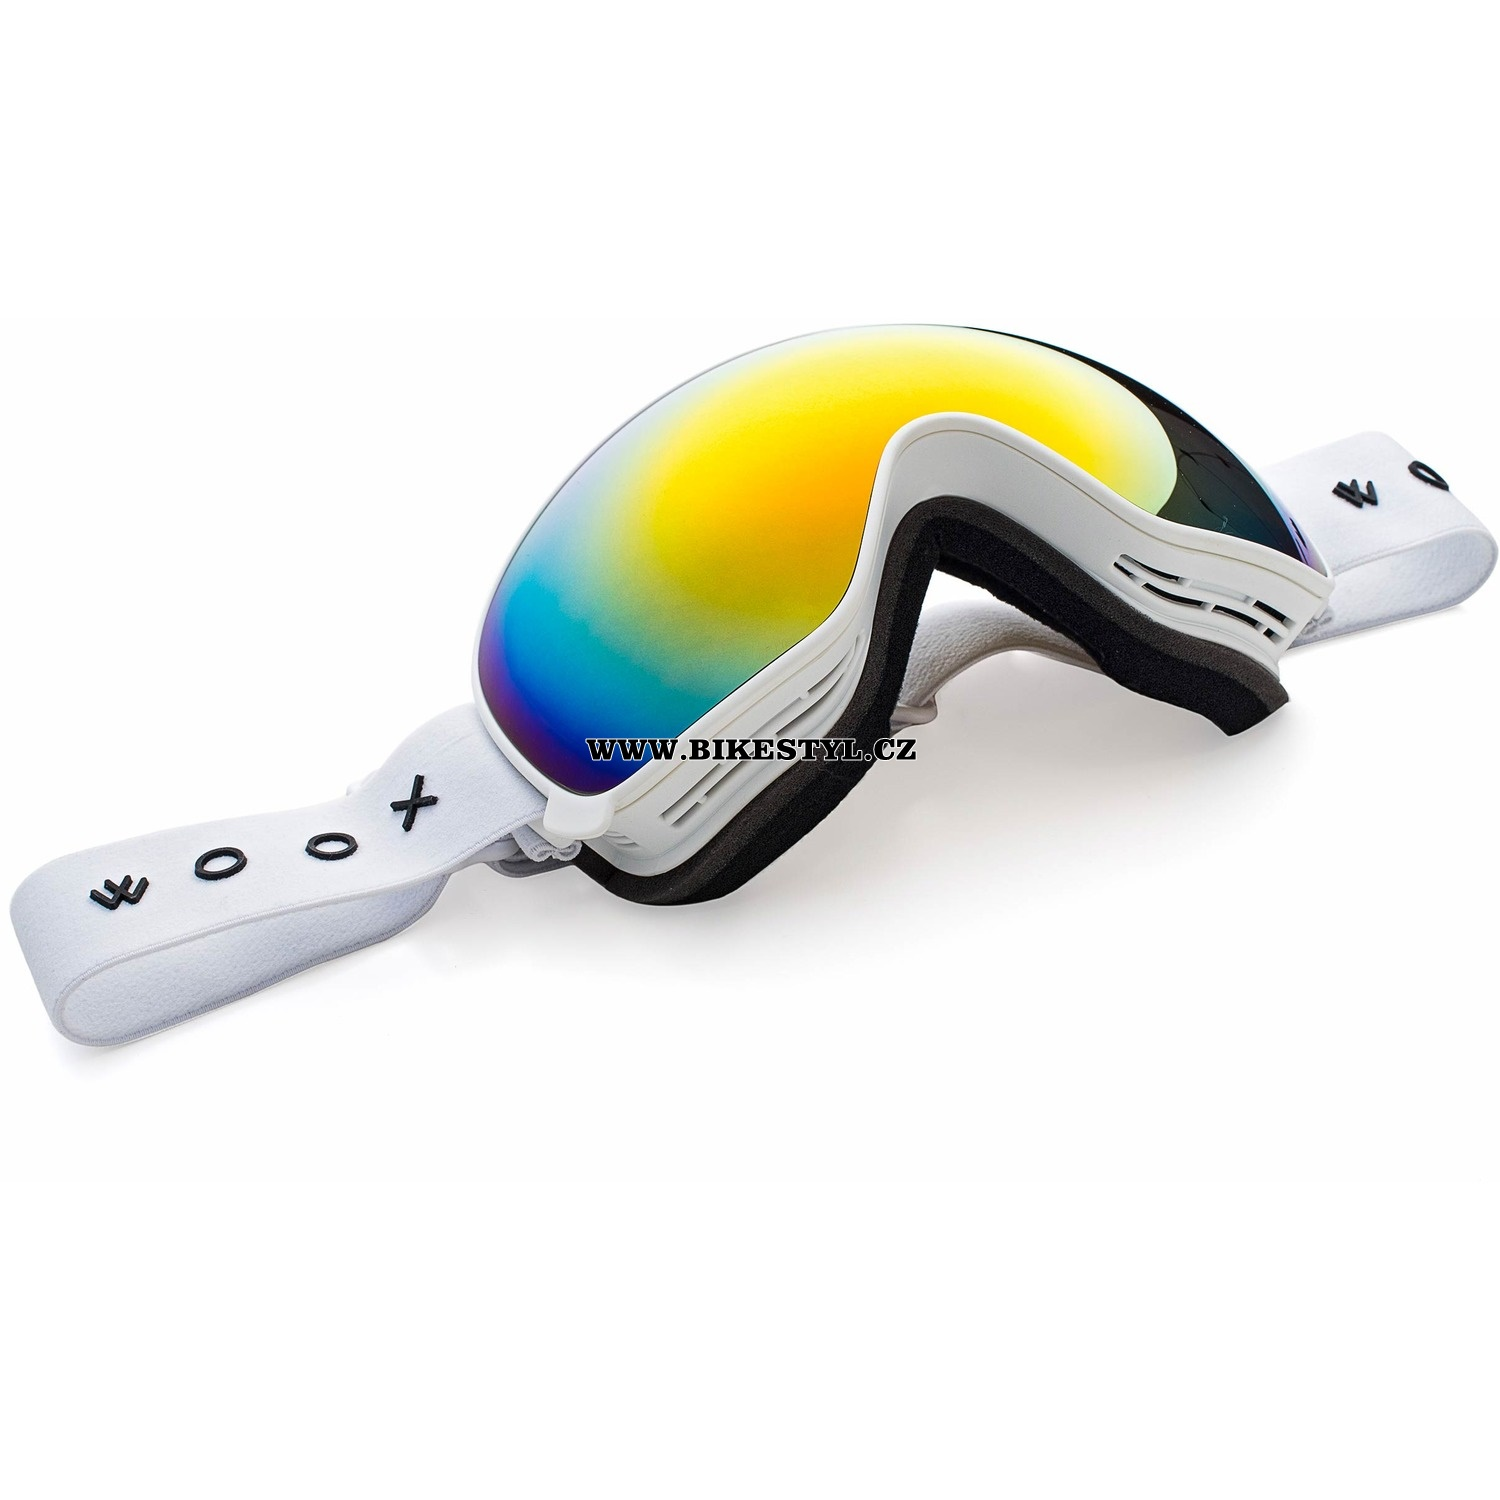 Snowboard brýle Woox opticus Opolentus white-red